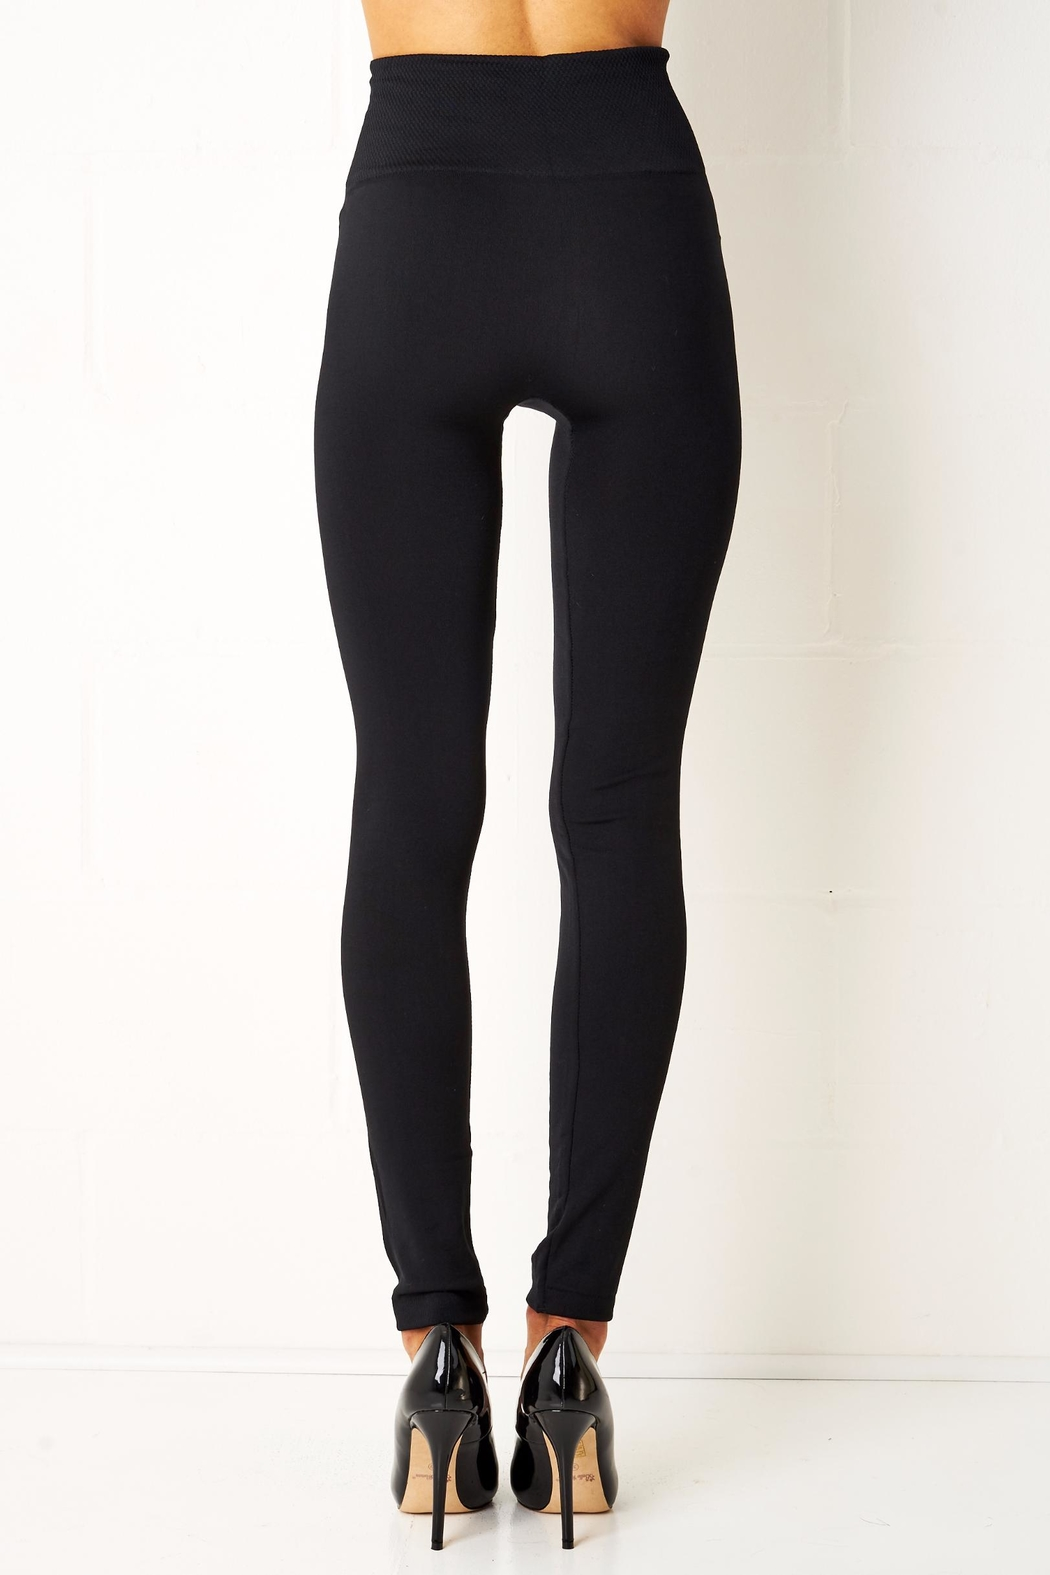 frontrow Black Thermal Leggings - Side Cropped Image